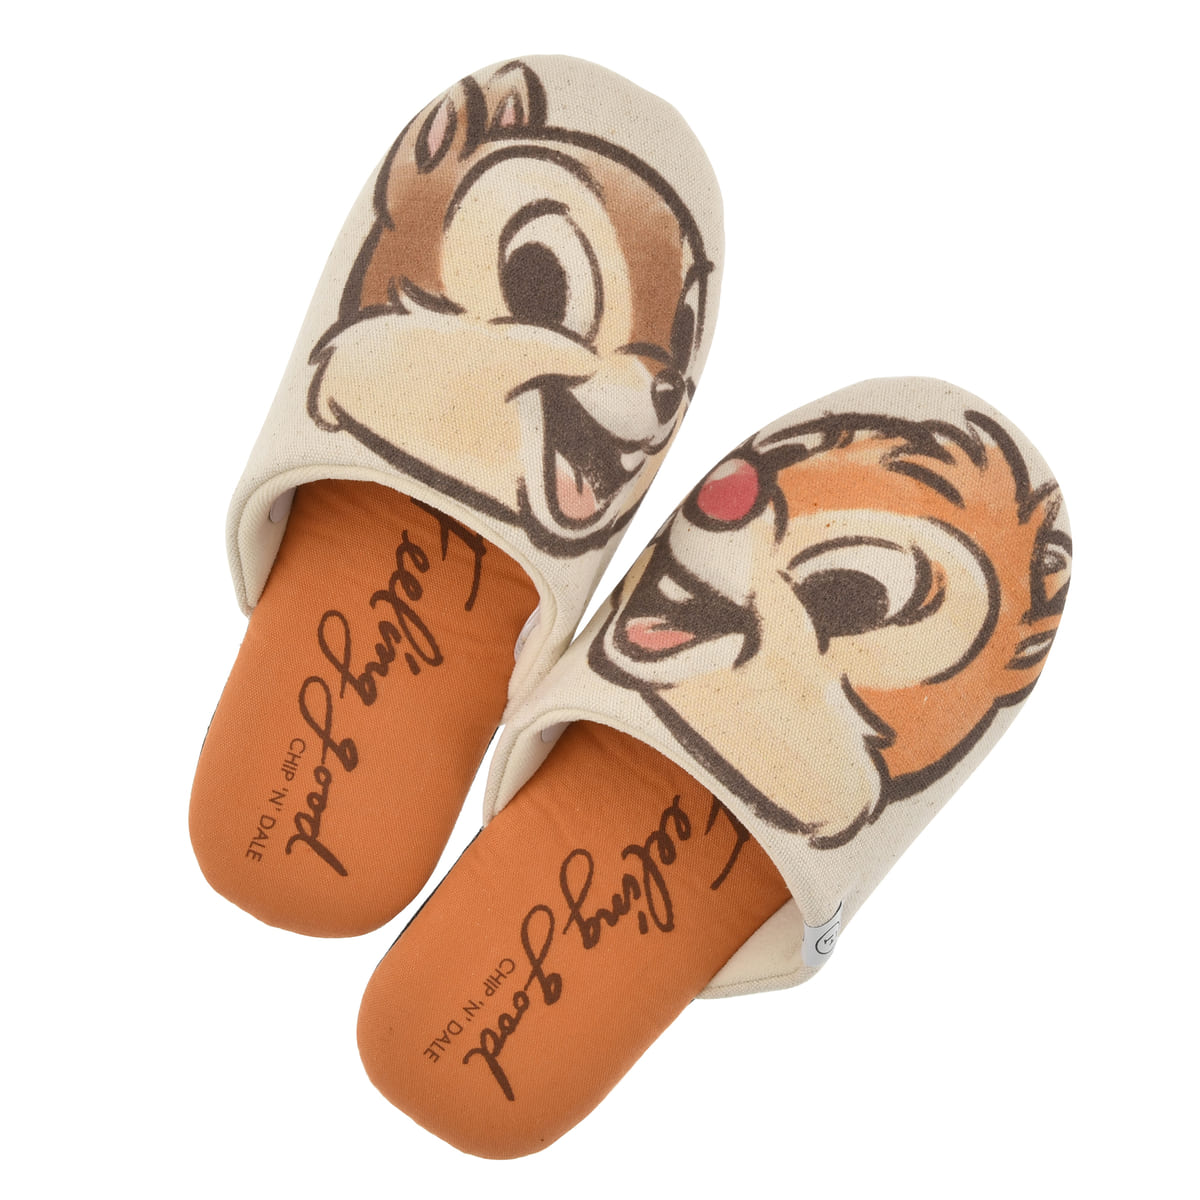 【FOOD TEXTILE】チップ&デール ルームシューズ オレンジ Chip&Dale FOOD TEXTILE02